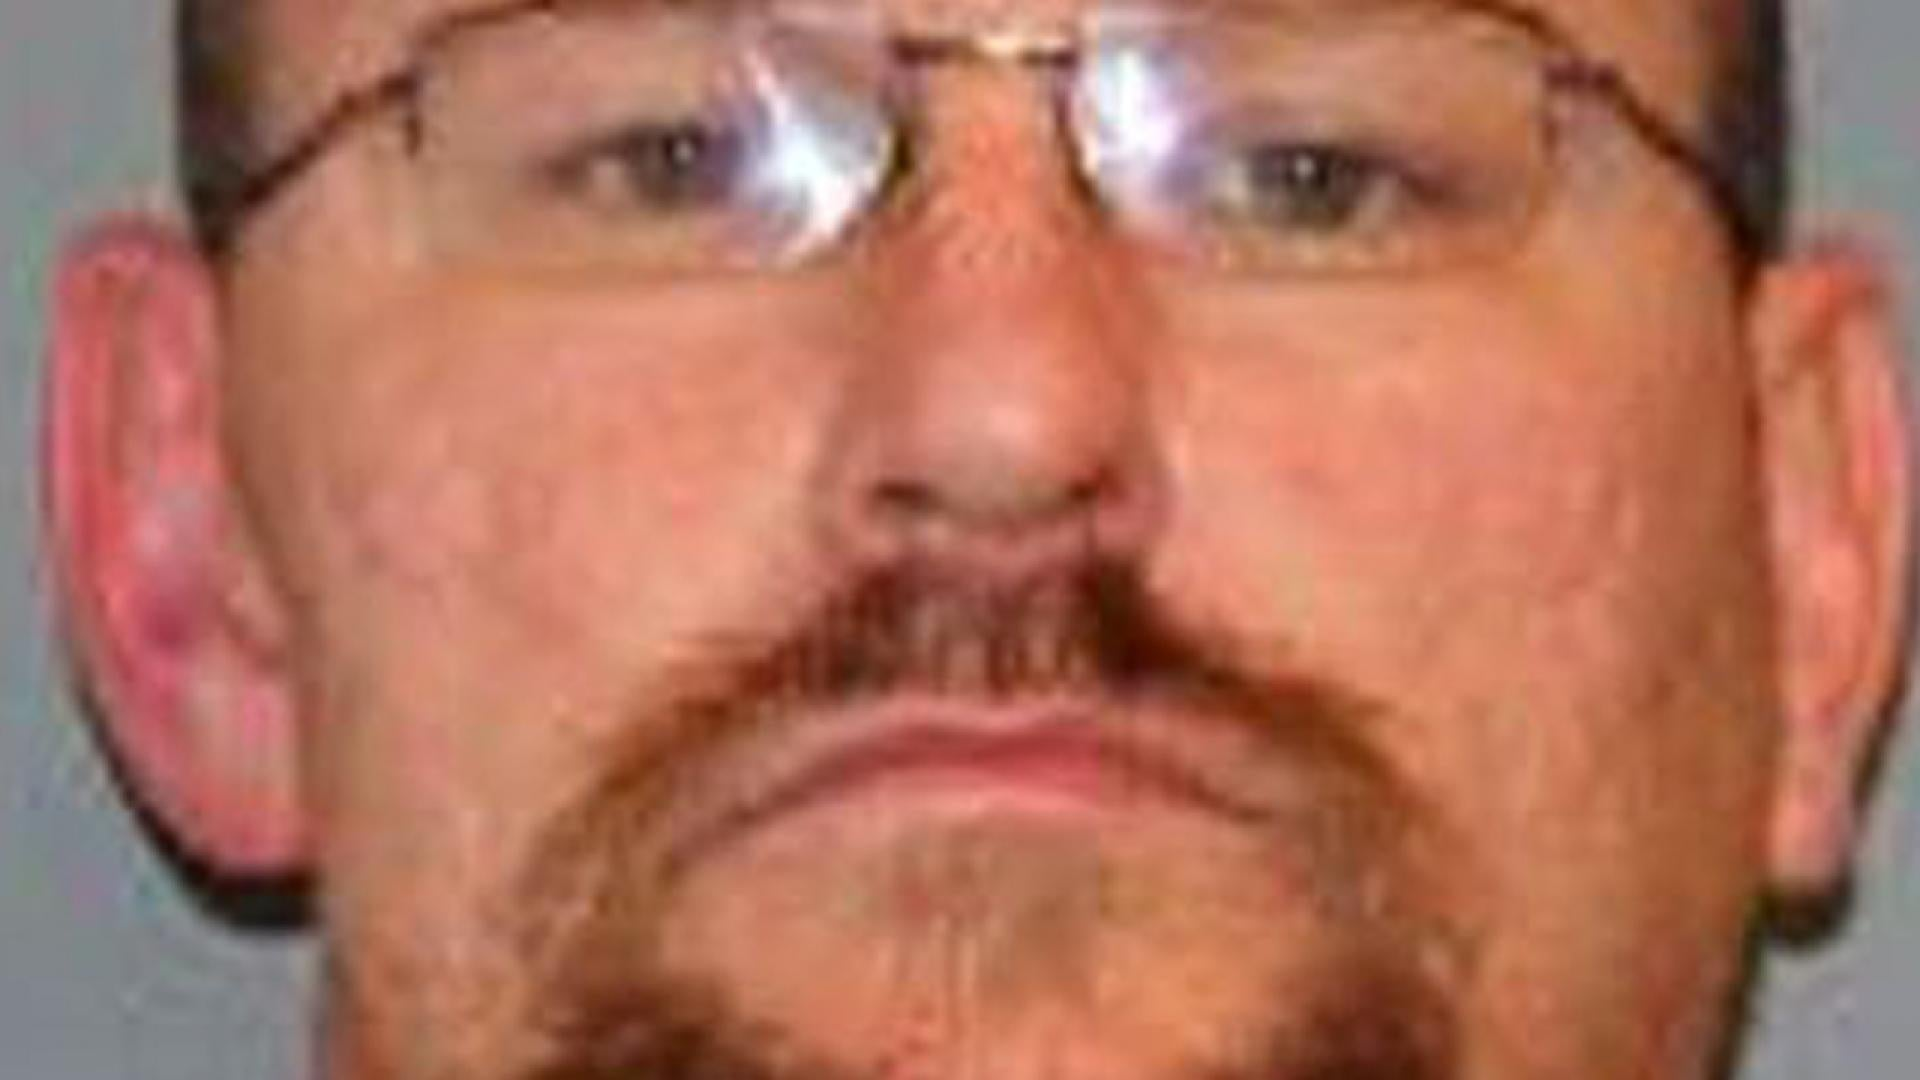 James John Rynerson, 38, was being held in the Mesa County Jail on menacing, disorderly conduct and trespass charges when he managed to walk free on May 21.